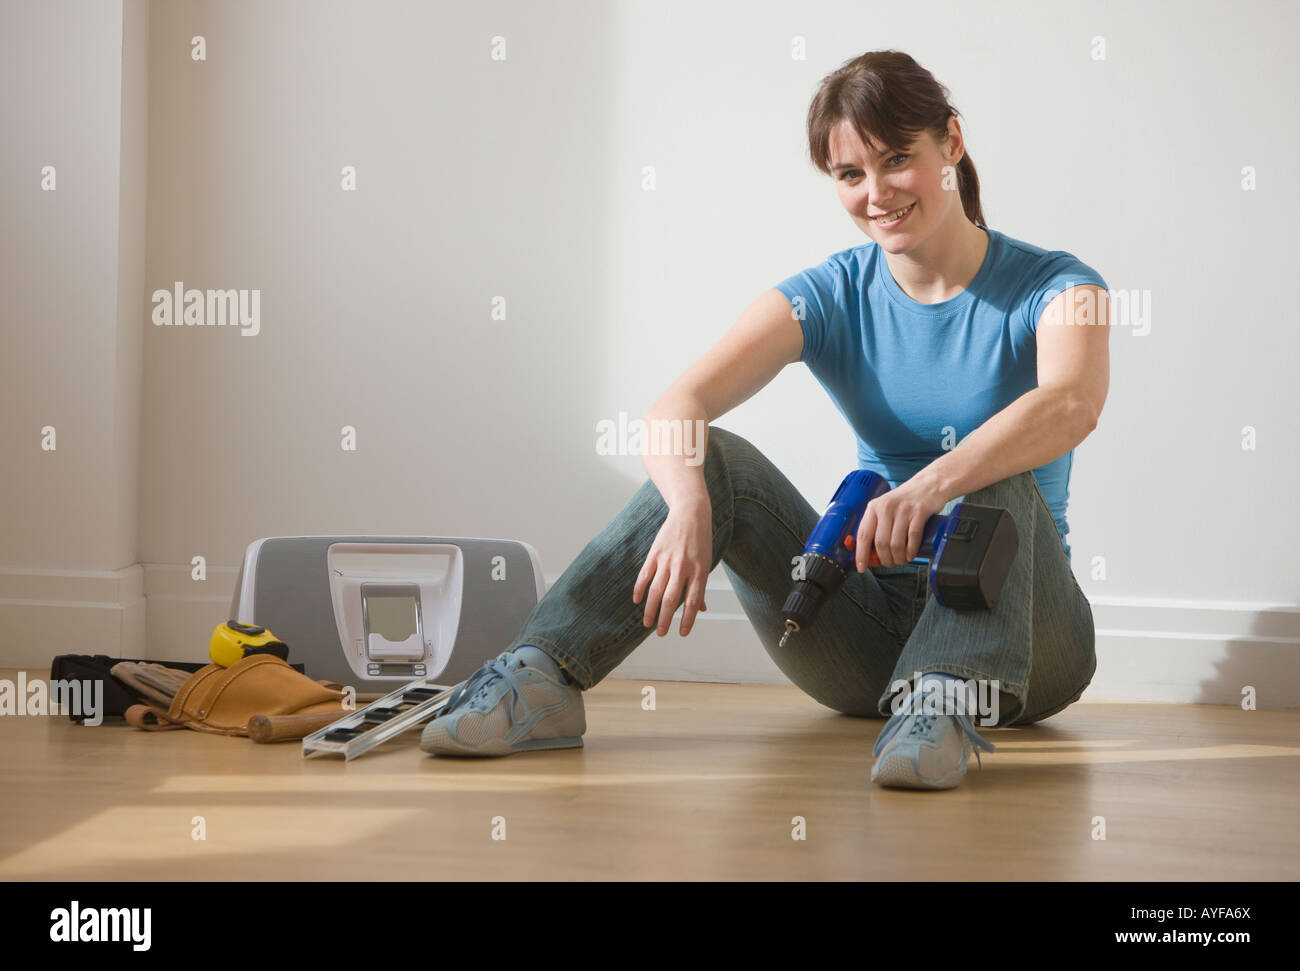 Woman sitting on floor holding cordless drill - Stock Image